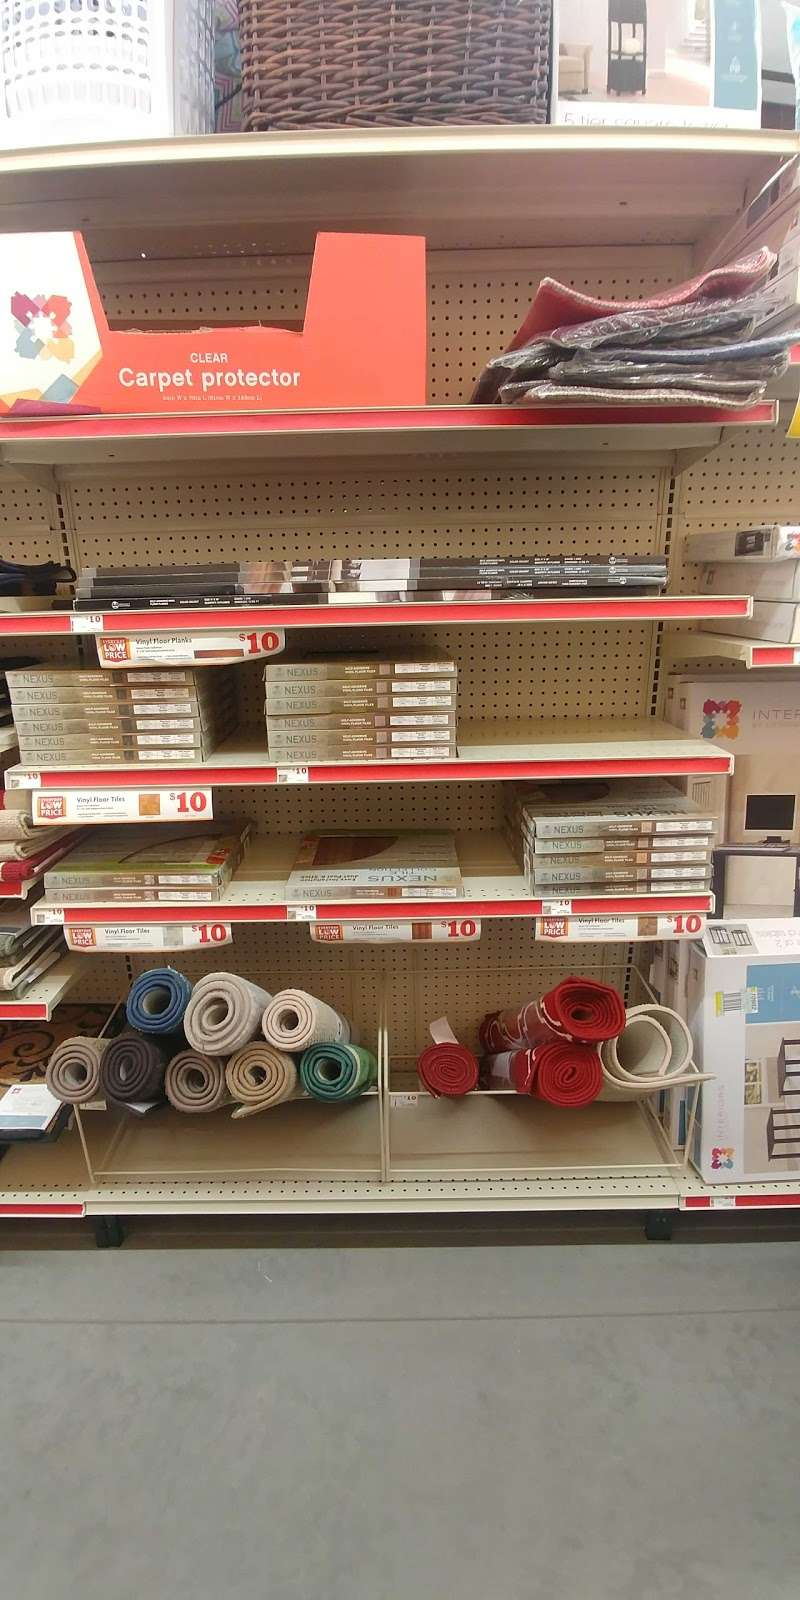 Family Dollar - supermarket  | Photo 4 of 5 | Address: 14 S West Blvd, Newfield, NJ 08344, USA | Phone: (856) 457-6130